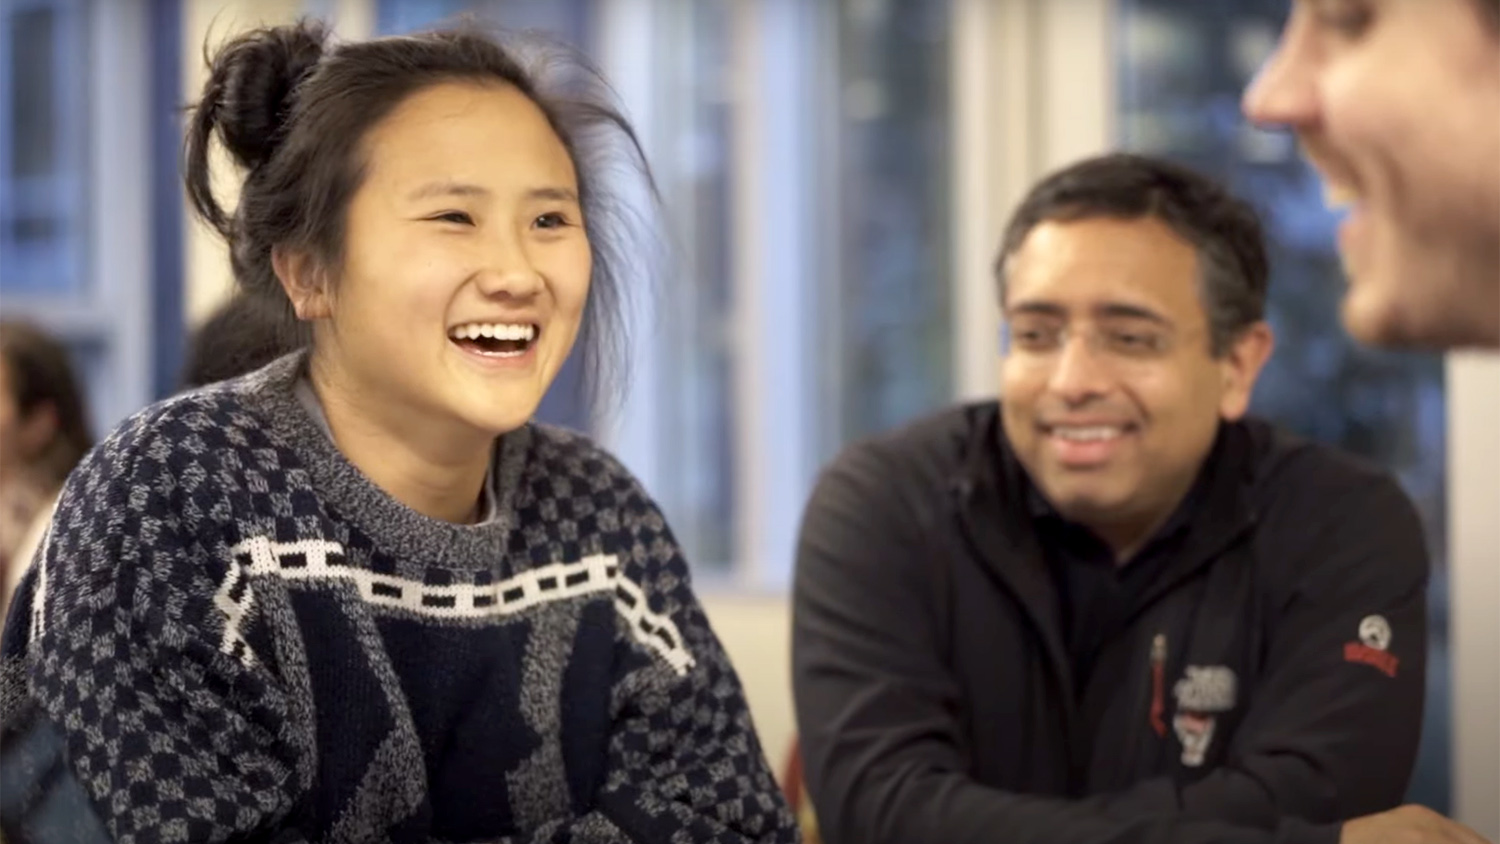 A still image to a video shows a Social Innovation Fellow talking with fellow students.